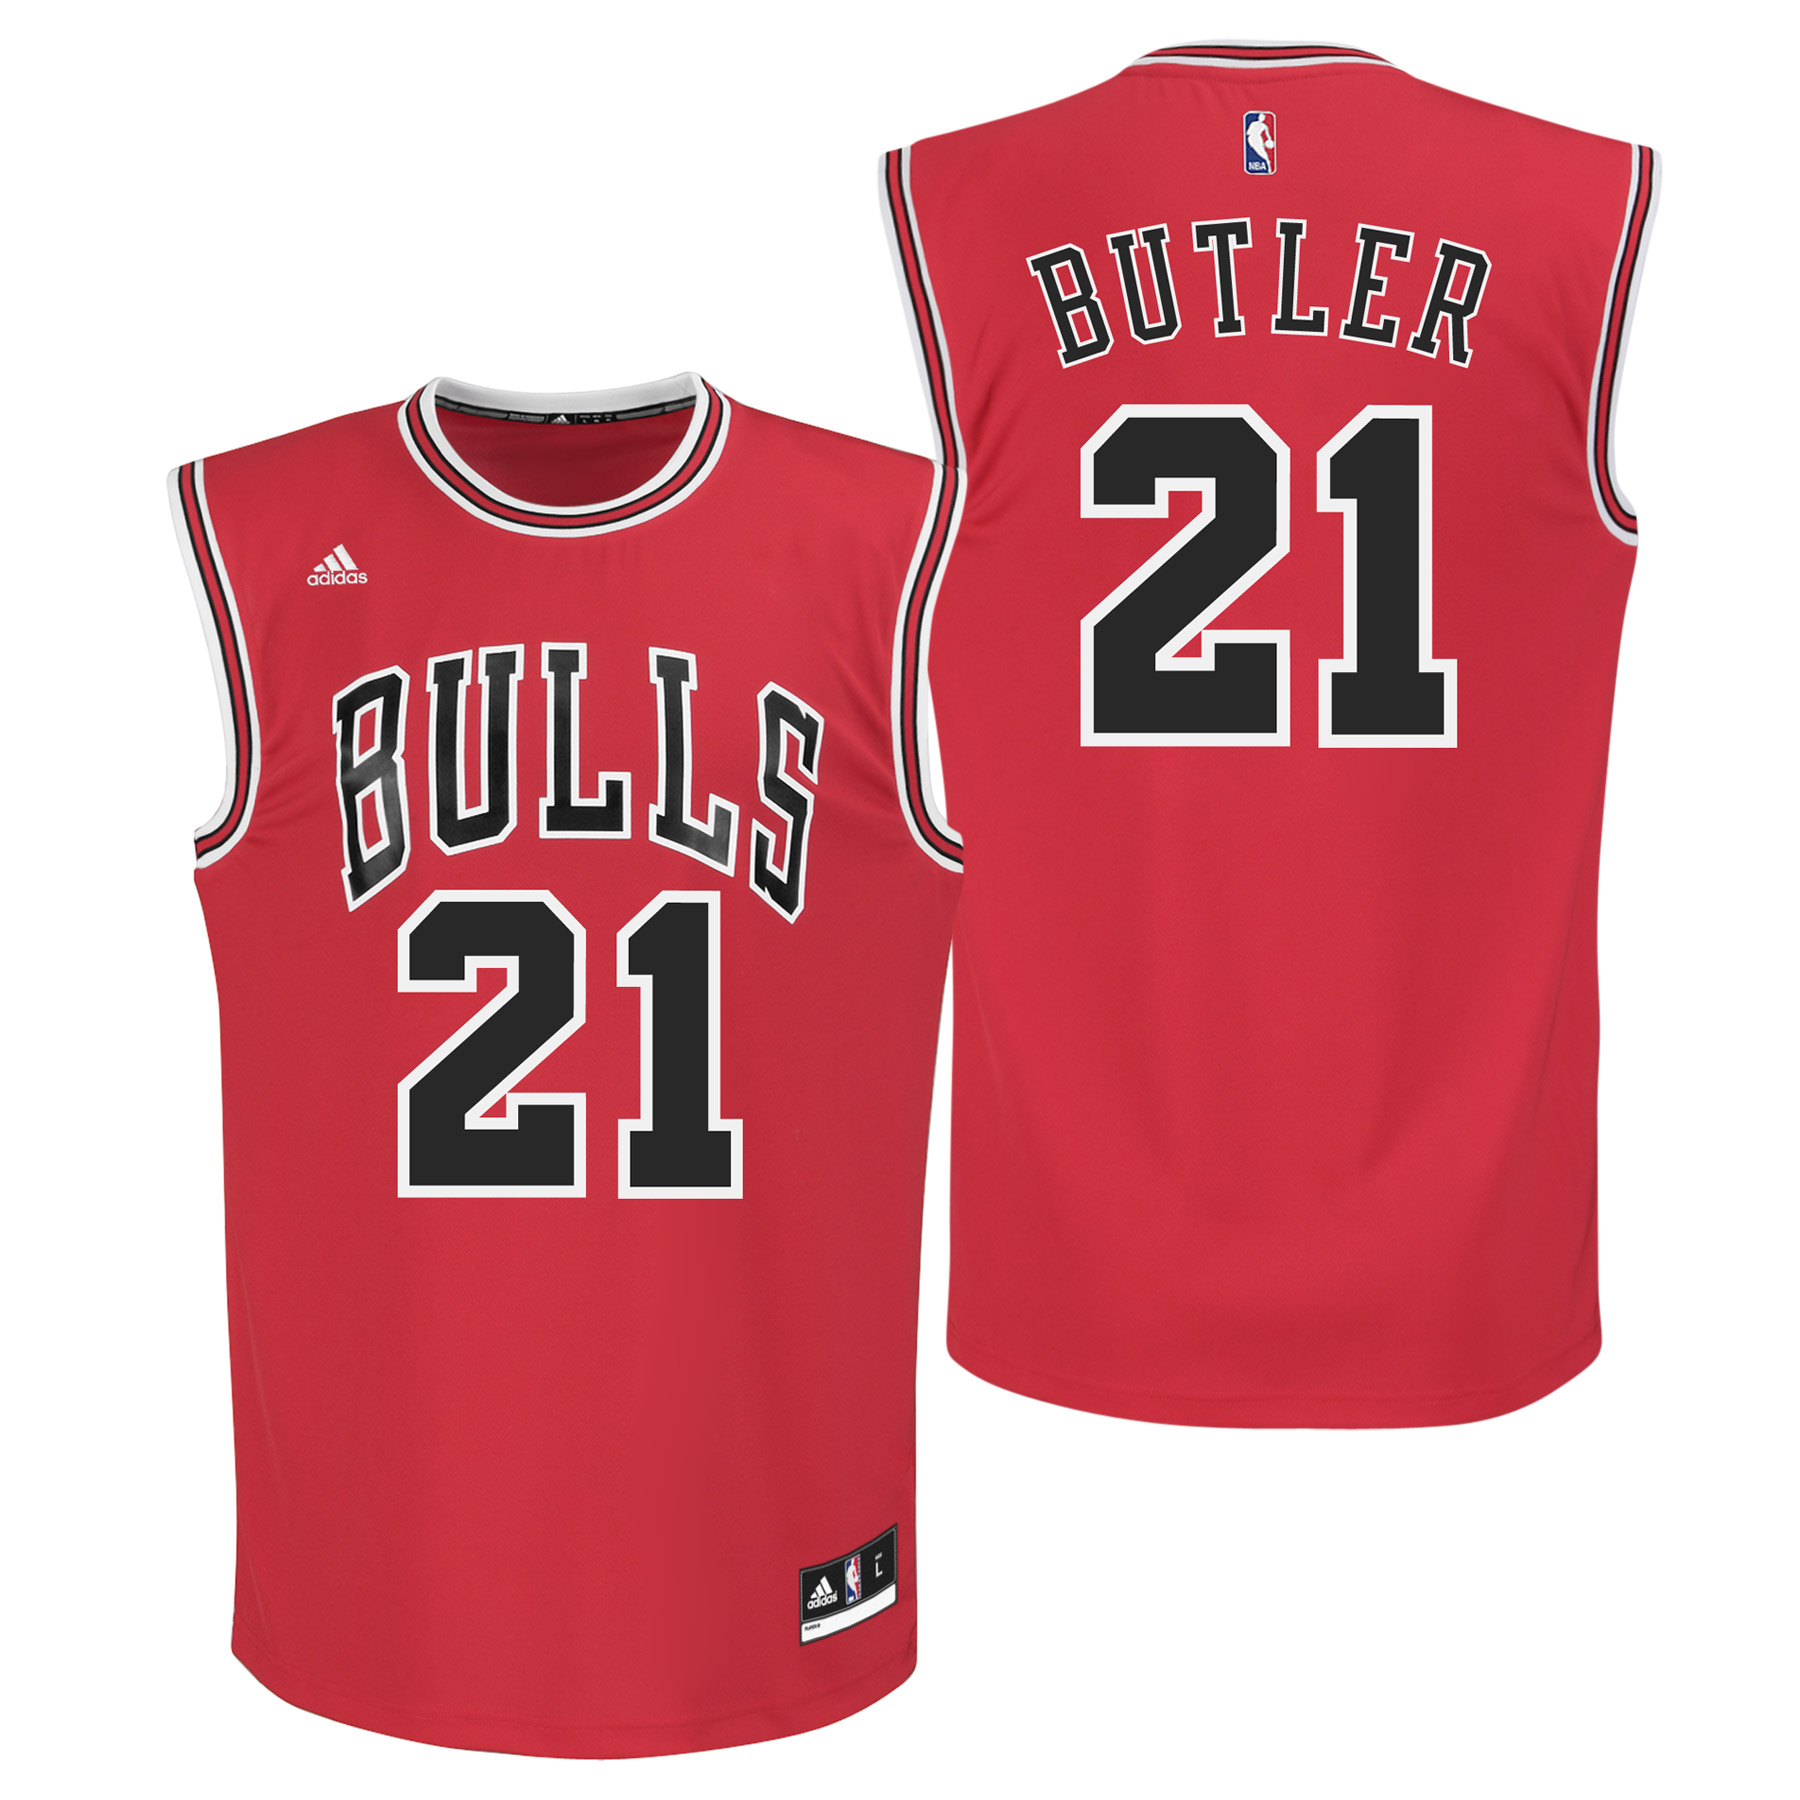 Chicago Bulls Road Replica Jersey - Jimmy Butler - Youth